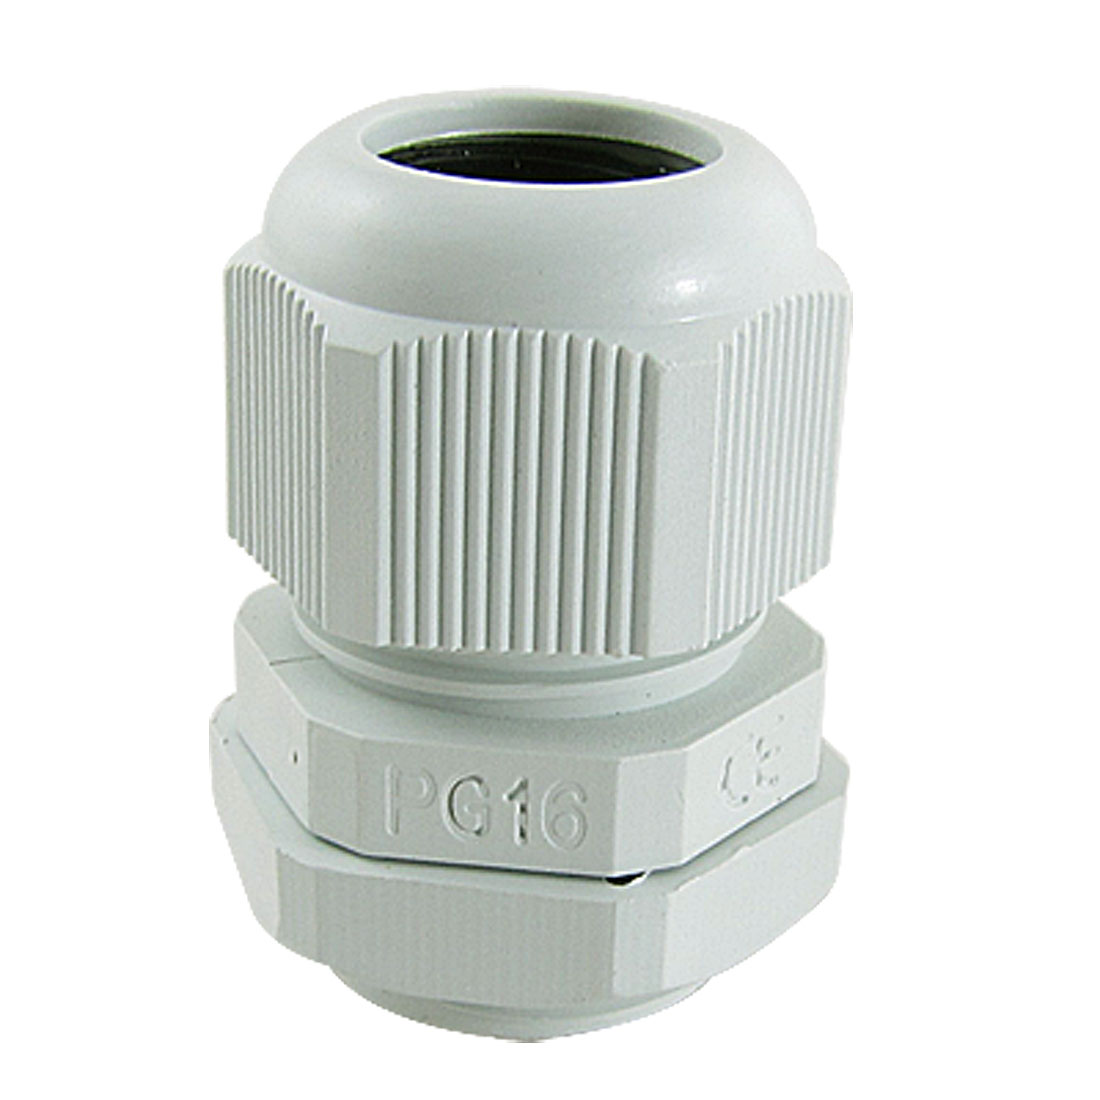 10 Pcs Waterproof PG16 Wht Plastic Cable Glands Joints